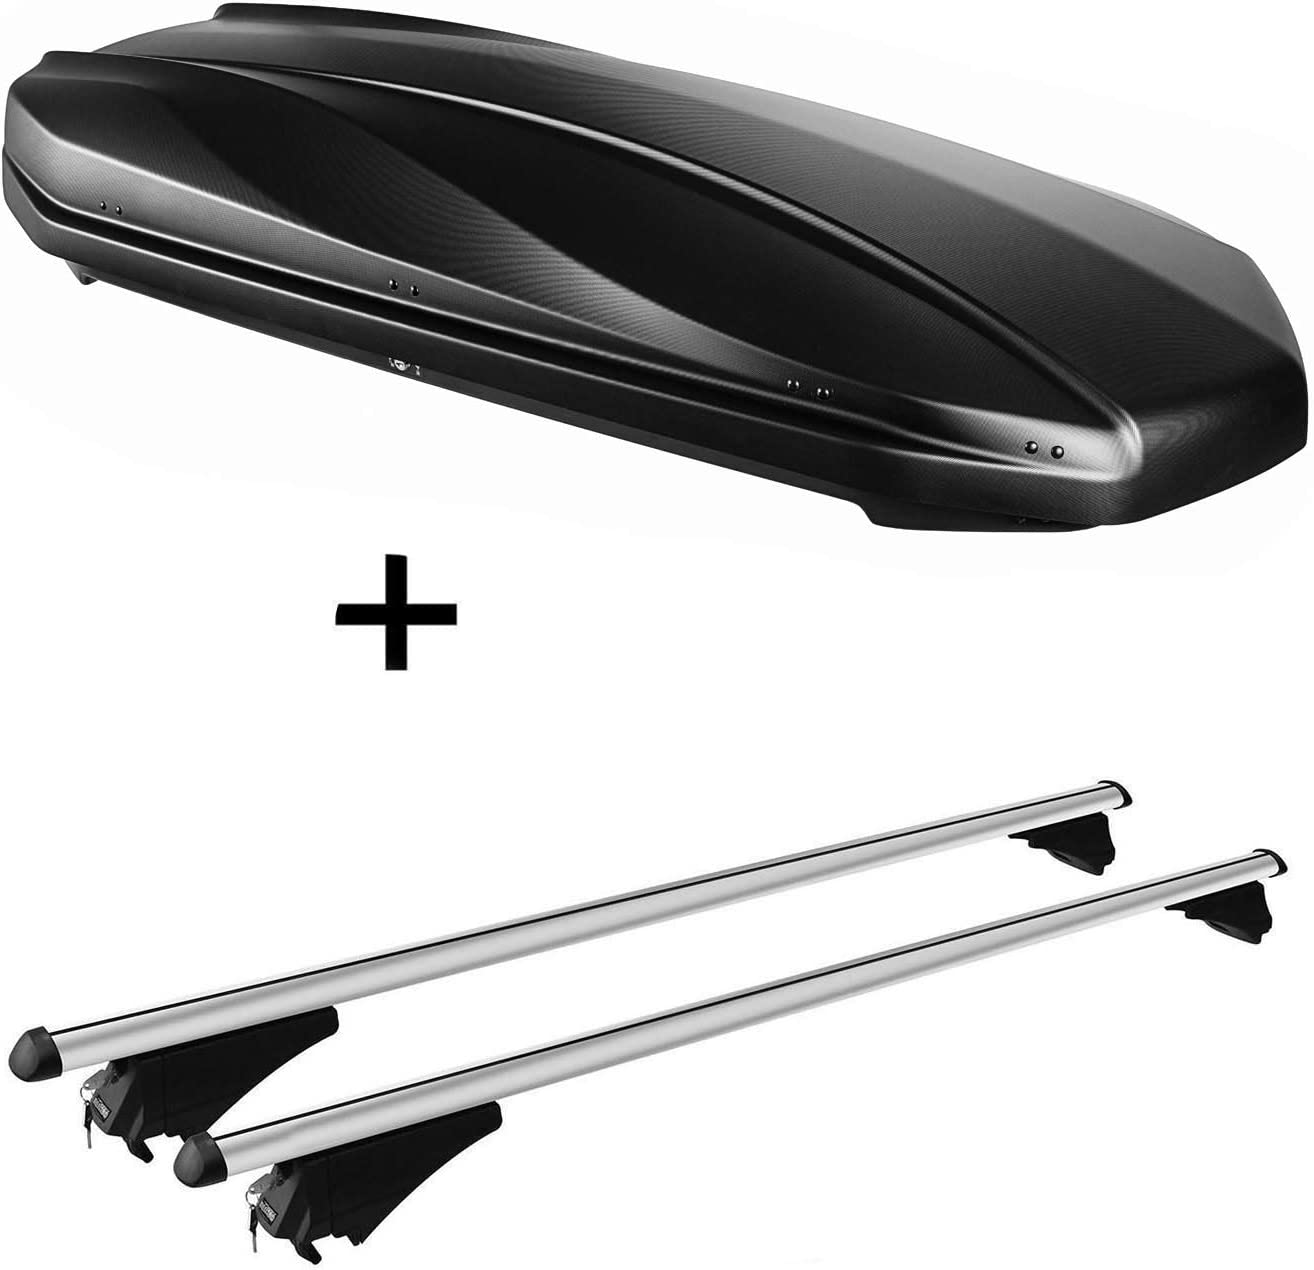 VDP Strike Roof Box 440 Litres Black Matte Roof Rack Rack Tiger XL Compatible with BMW X5 2010-2013 E70